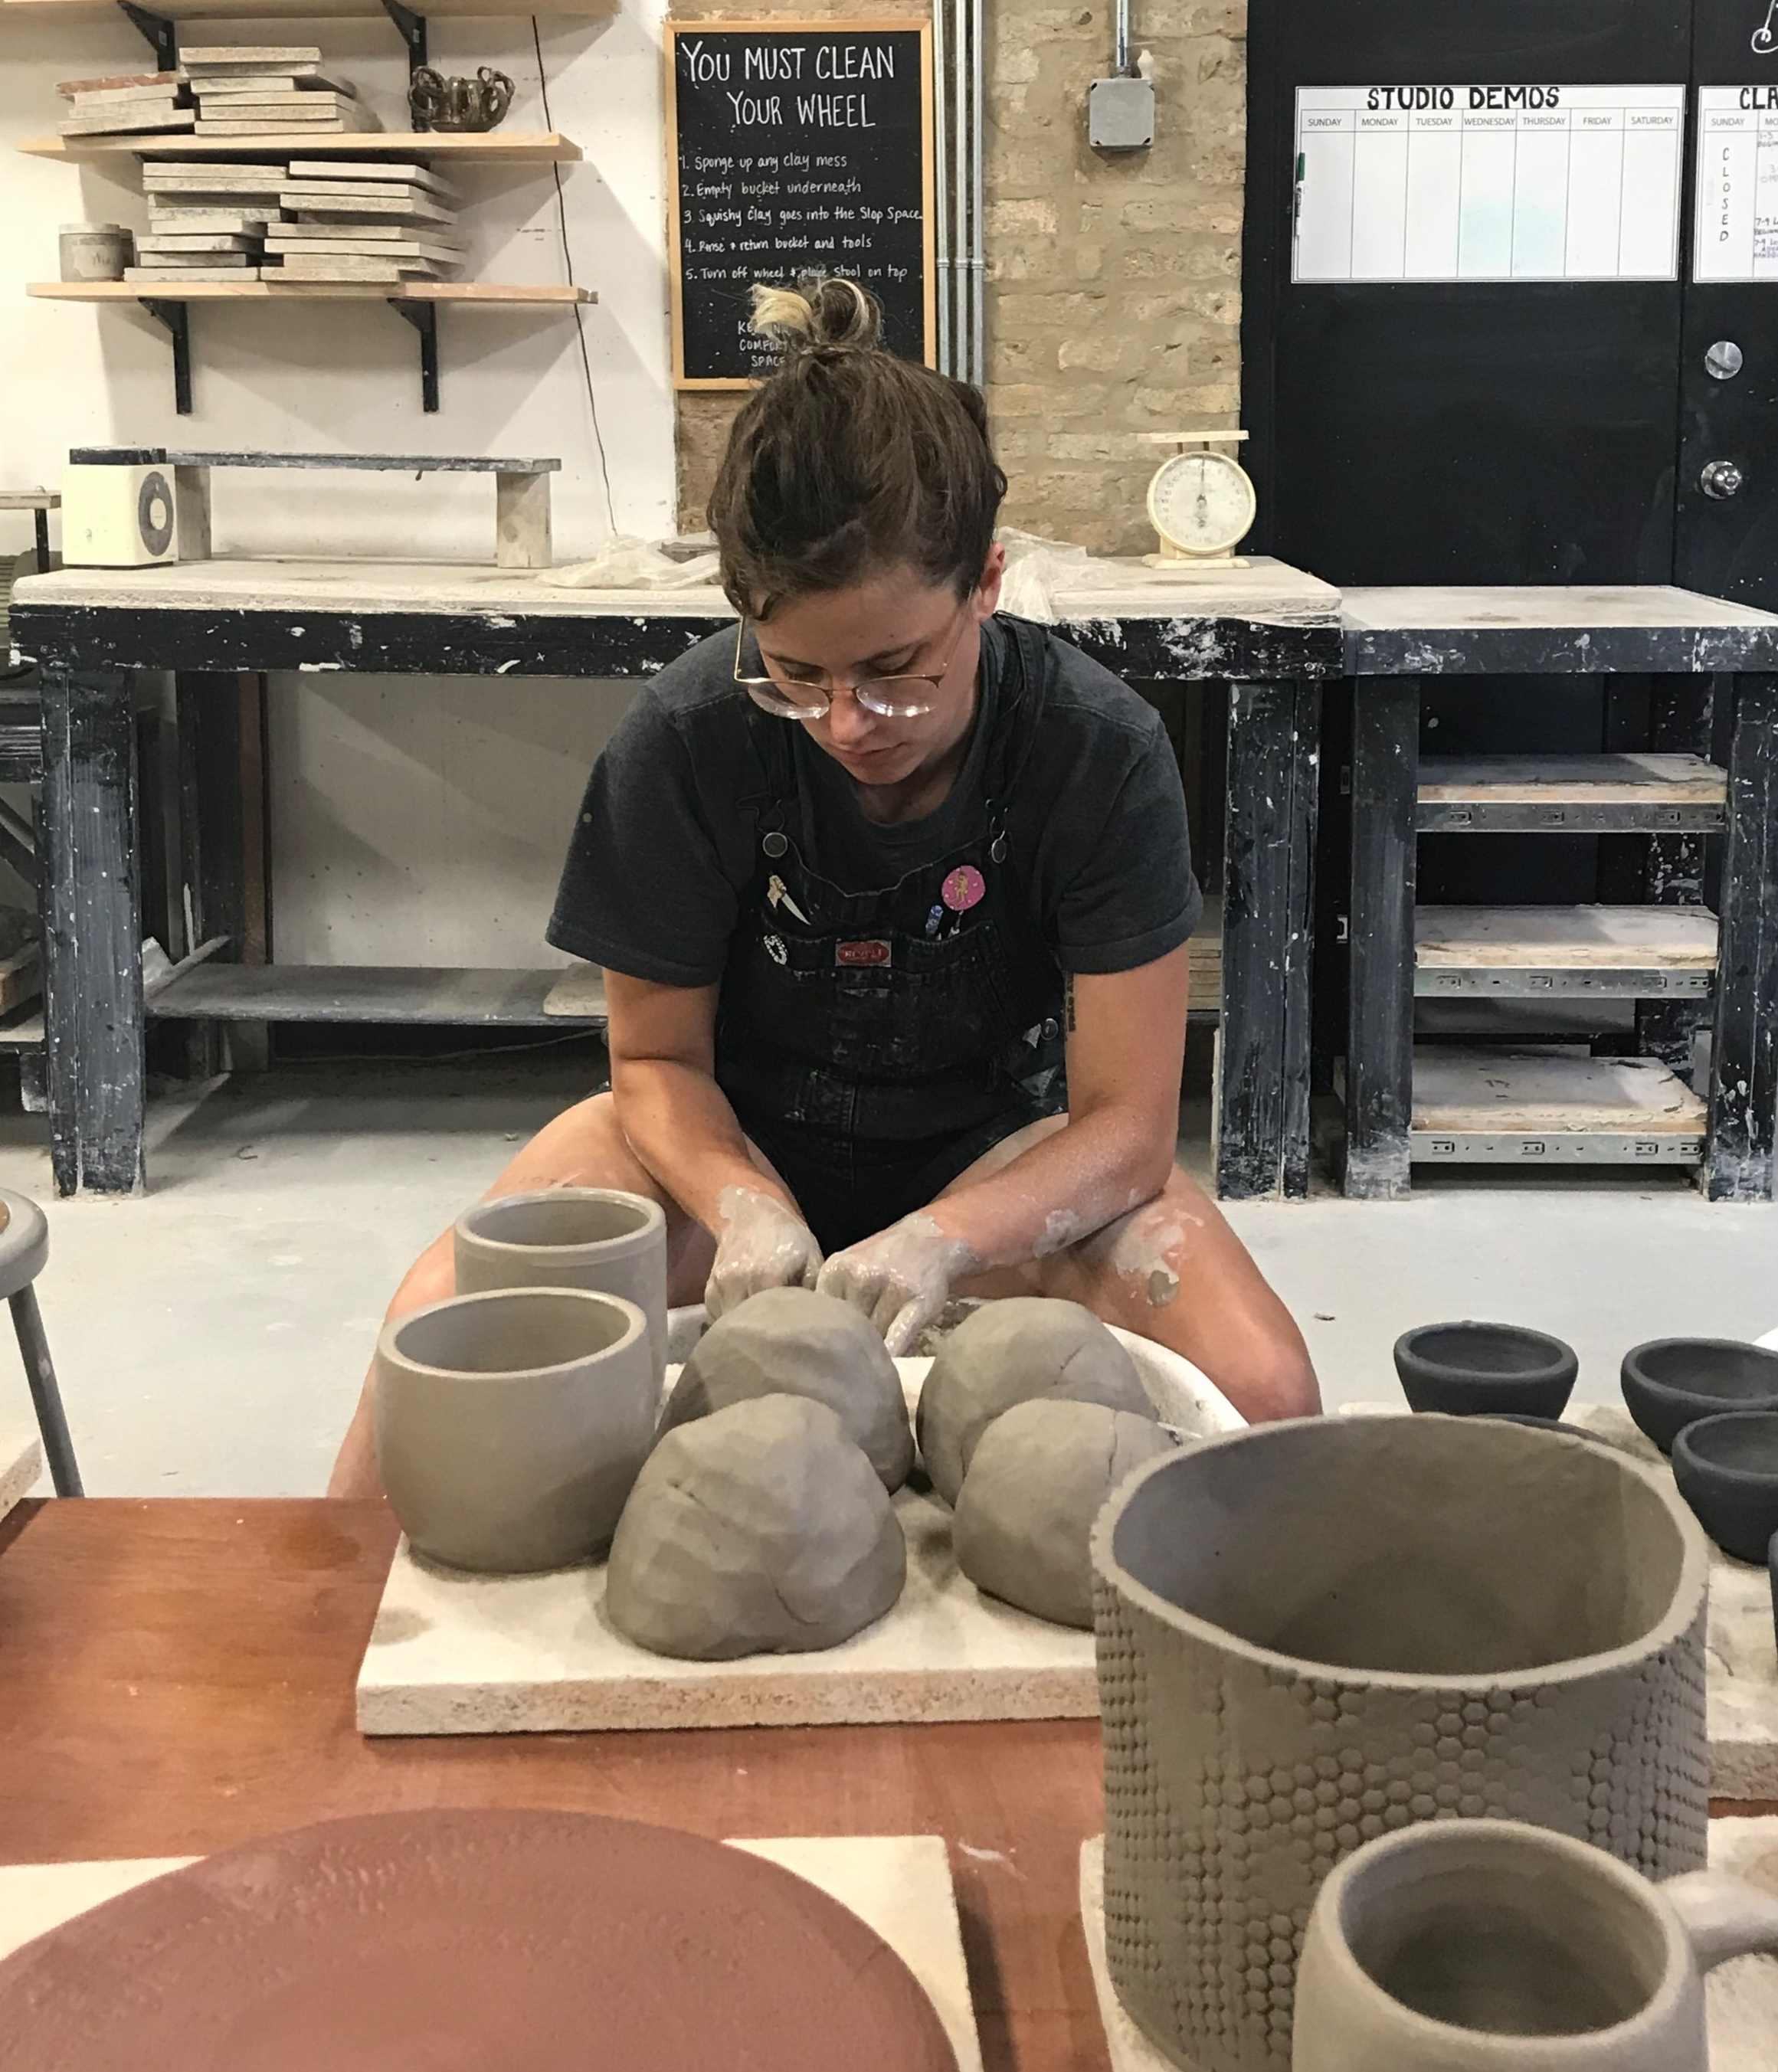 Carly Connelly  earned an MFA in sculpture from Herron School of Art and Design in Indianapolis, IN. Upon returning to Chicago, they continued to pursue their interest in clay at Penguinfoot. Having learned to throw there, they are now excited to share their discoveries in clay with their students through form, function, and surface.   Find their work on Instagram:   @on_the_slab_ceramics